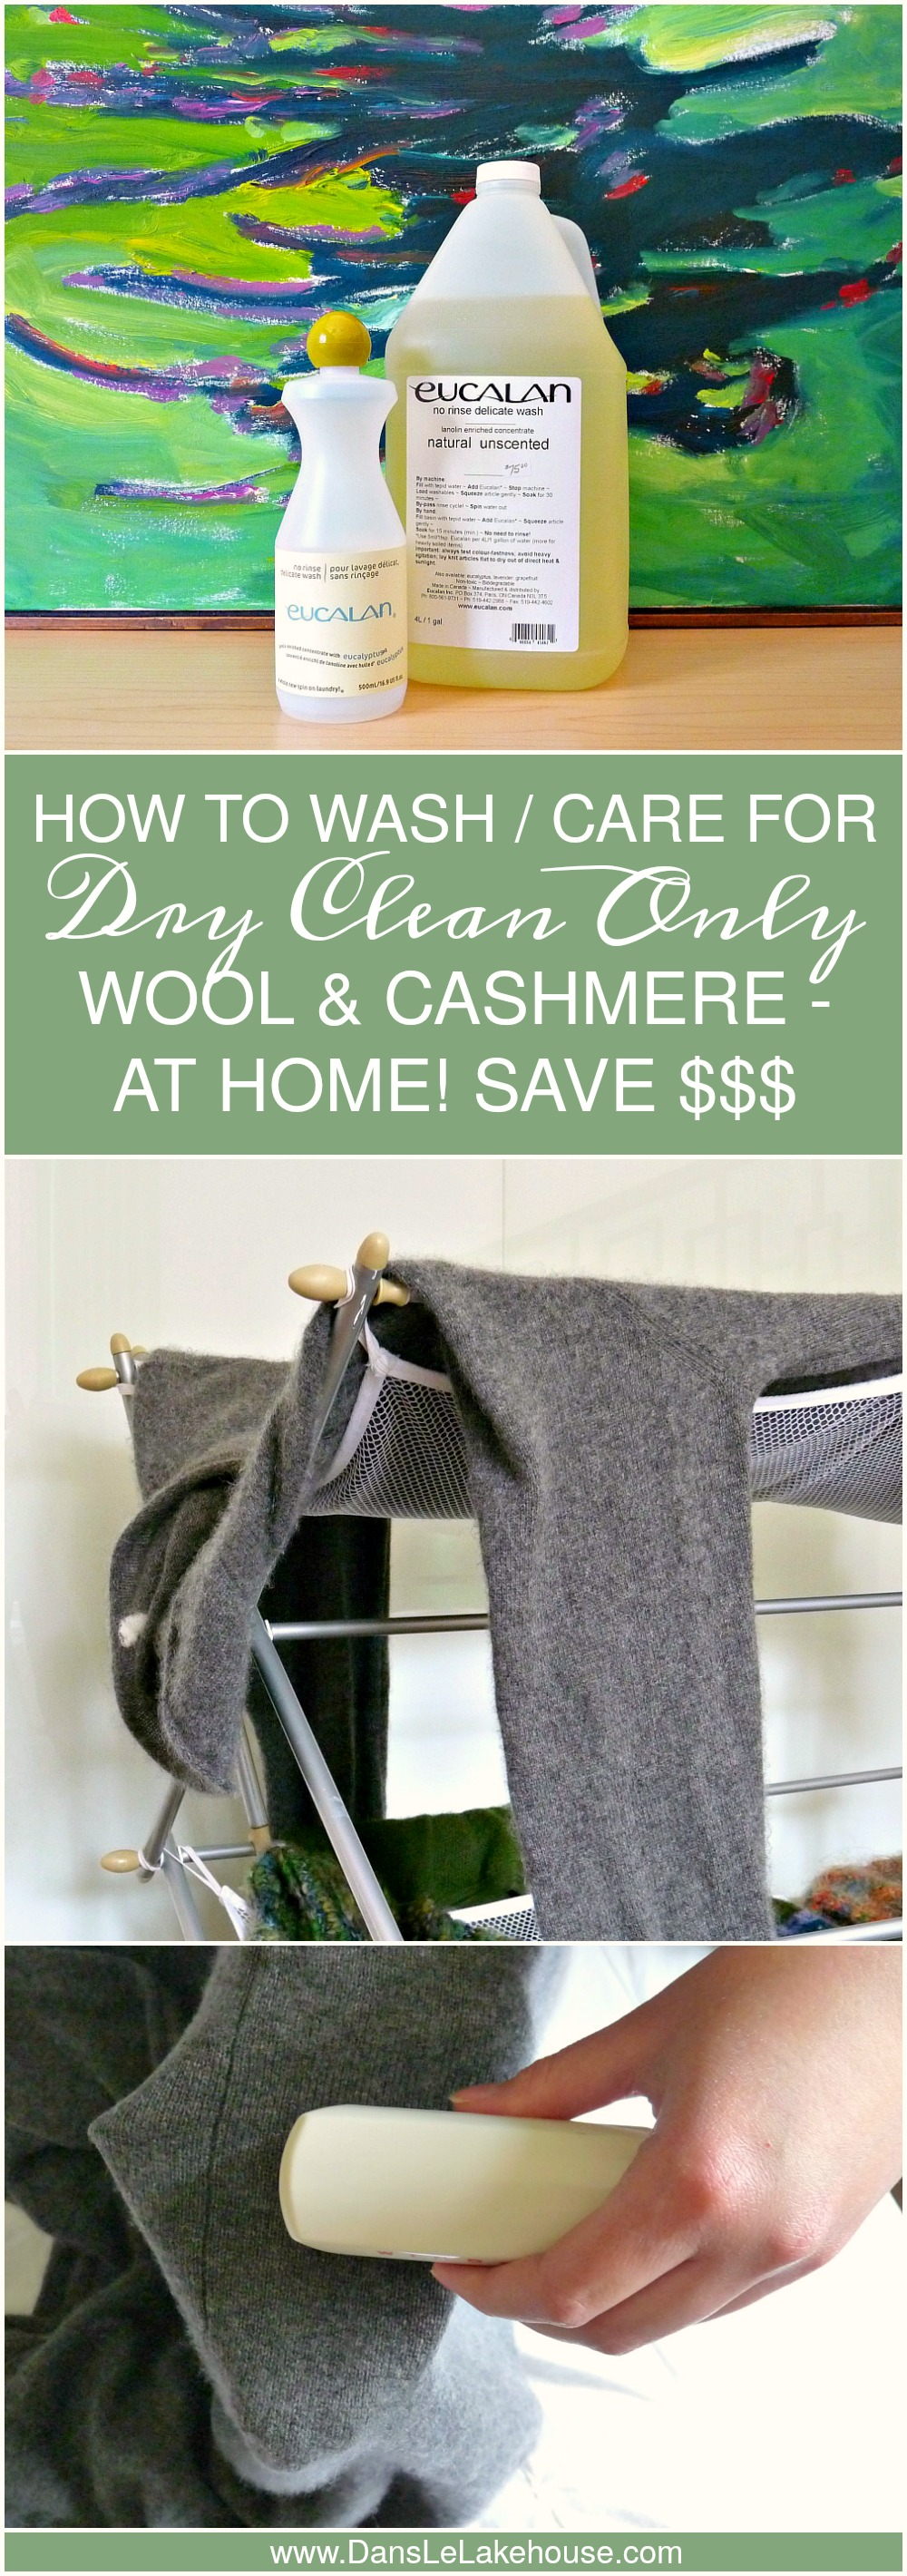 How to Wash and Care for Dry Clean Only Wool and Cashmere // Cleaning Tips // Saving Money (www.danslelakehouse.com)